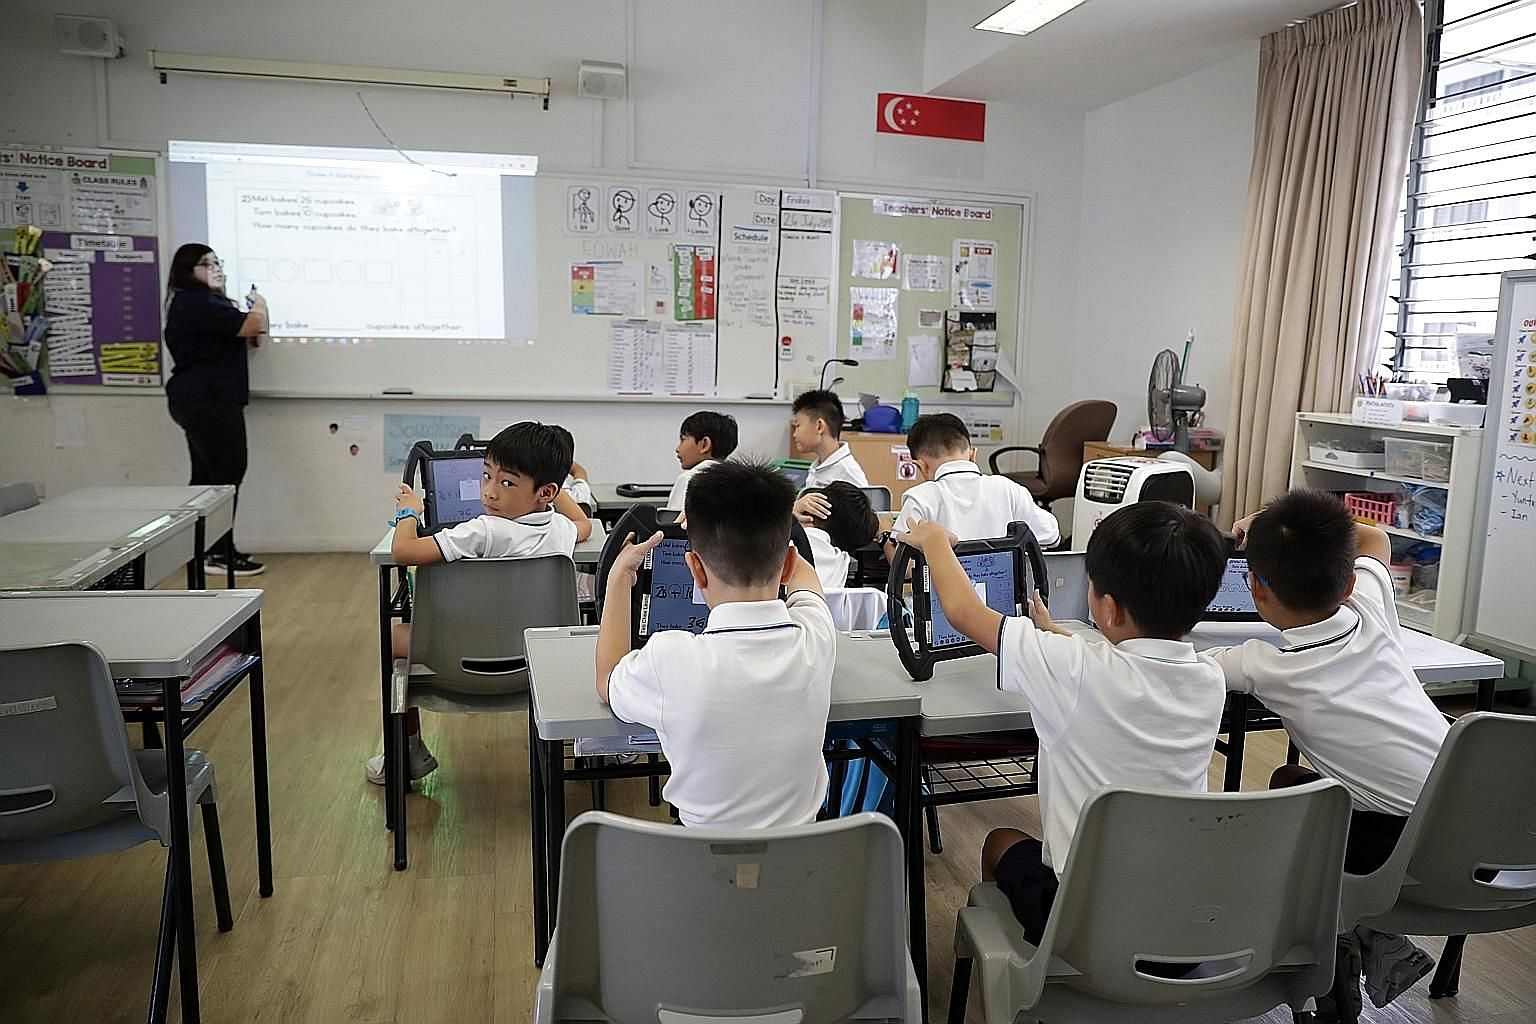 Pathlight School, for high-functioning children with autism, will be building a second campus in Tampines. Set to open in 2023, the new campus will provide 500 primary-level places. Year-on-year enrolment at Pathlight has risen by 10 per cent to 15 p